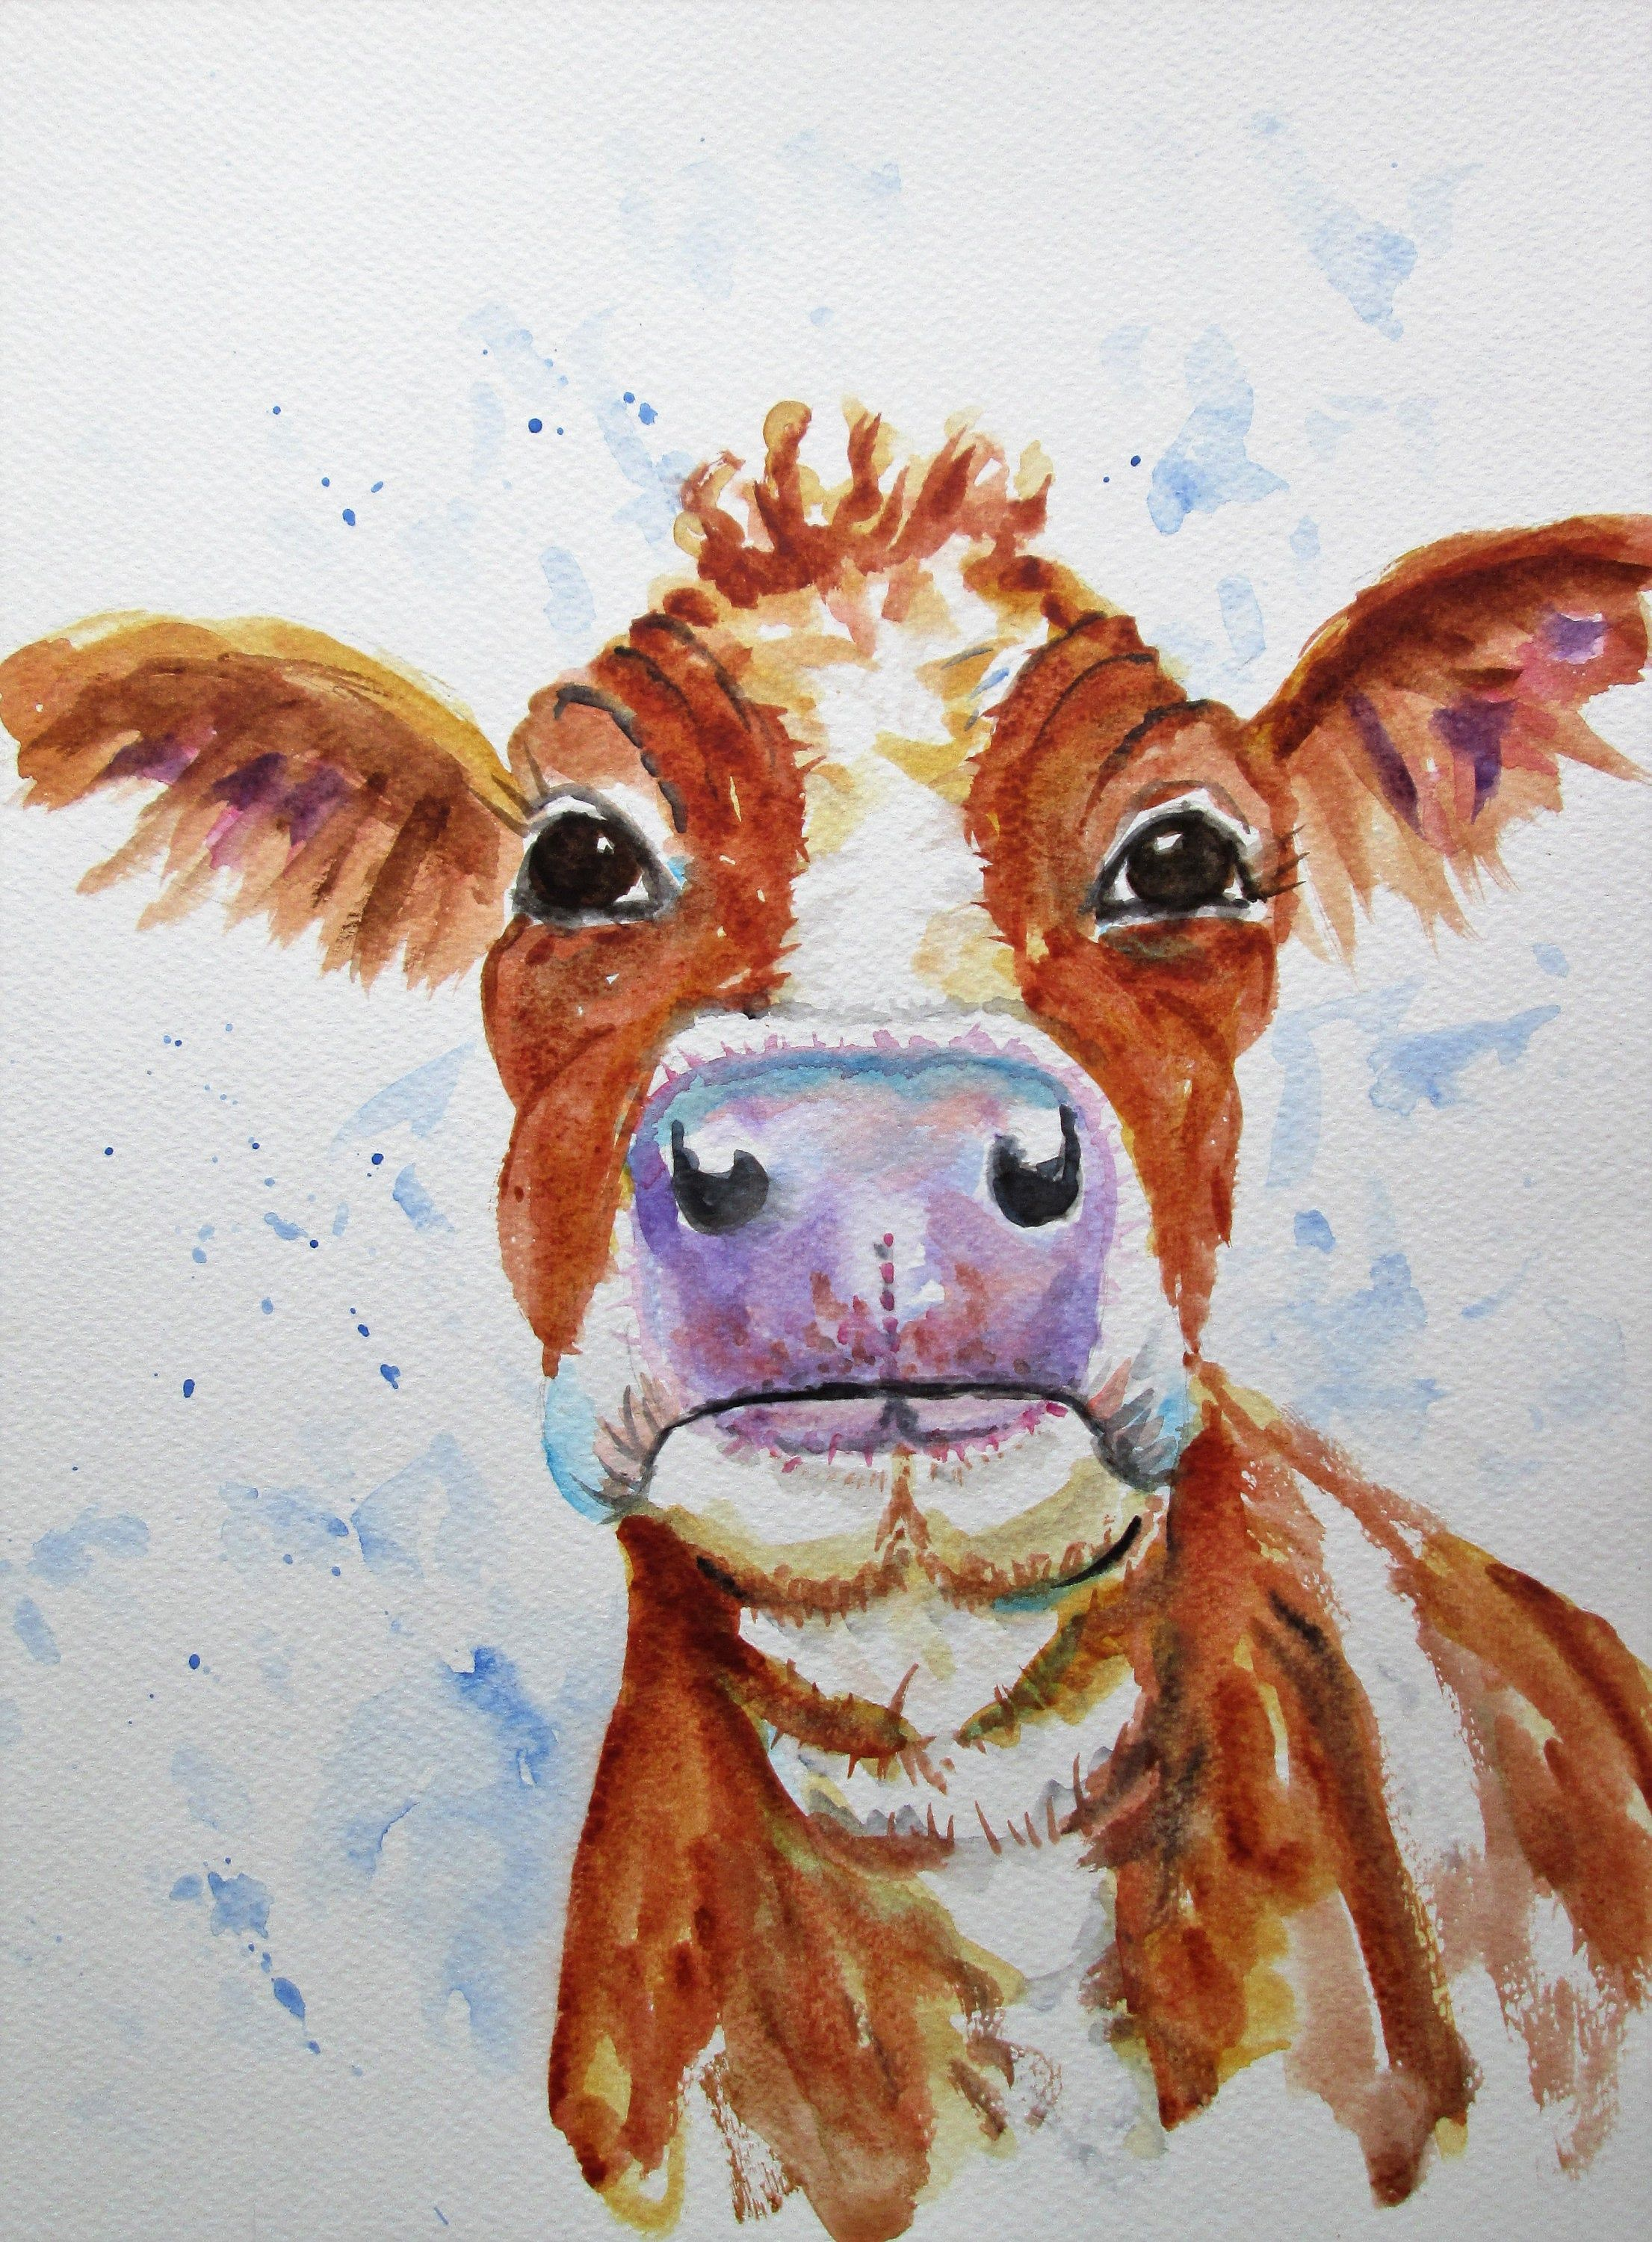 Original Cow Painting By Marjansart Jersey Cow Painting Livestock Farm Animal Brown Cow Portrait Barn Yard Art Cow Portrait Painting Cow Painting Cow Art Art Paintings For Sale